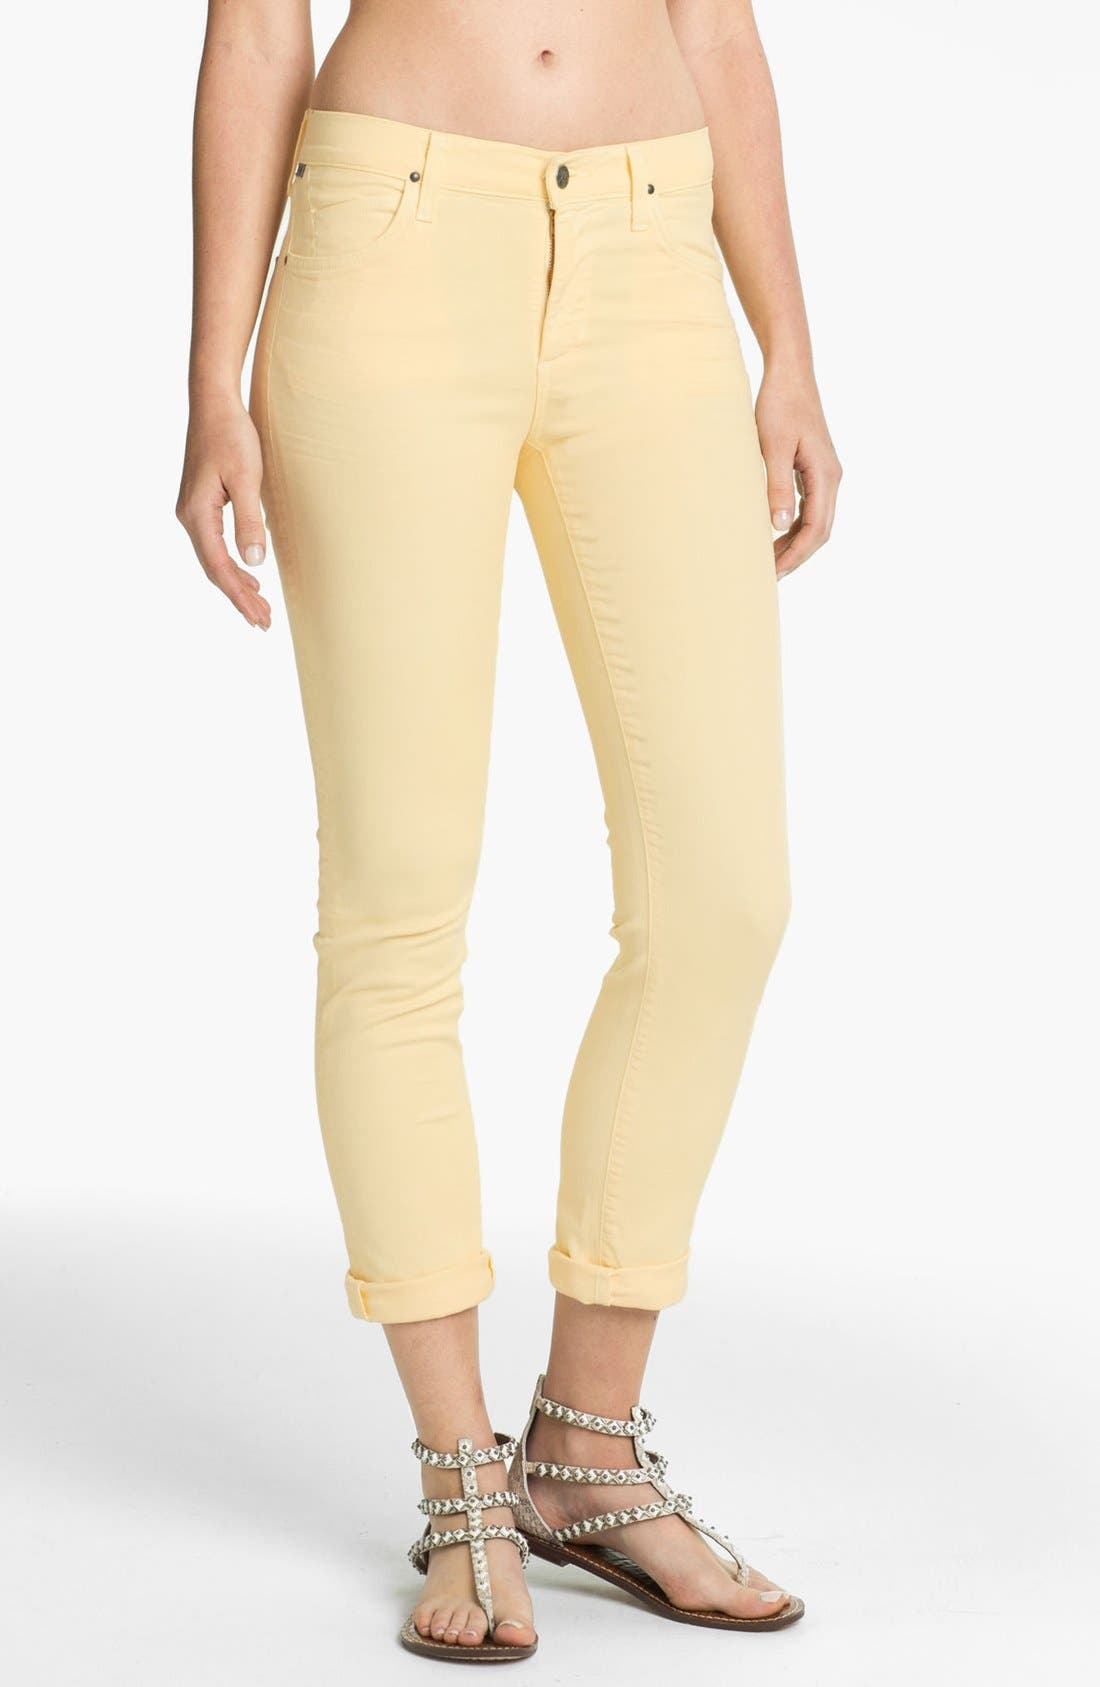 Alternate Image 1 Selected - Citizens of Humanity 'Carlton' Crop Skinny Jeans (Meringue)